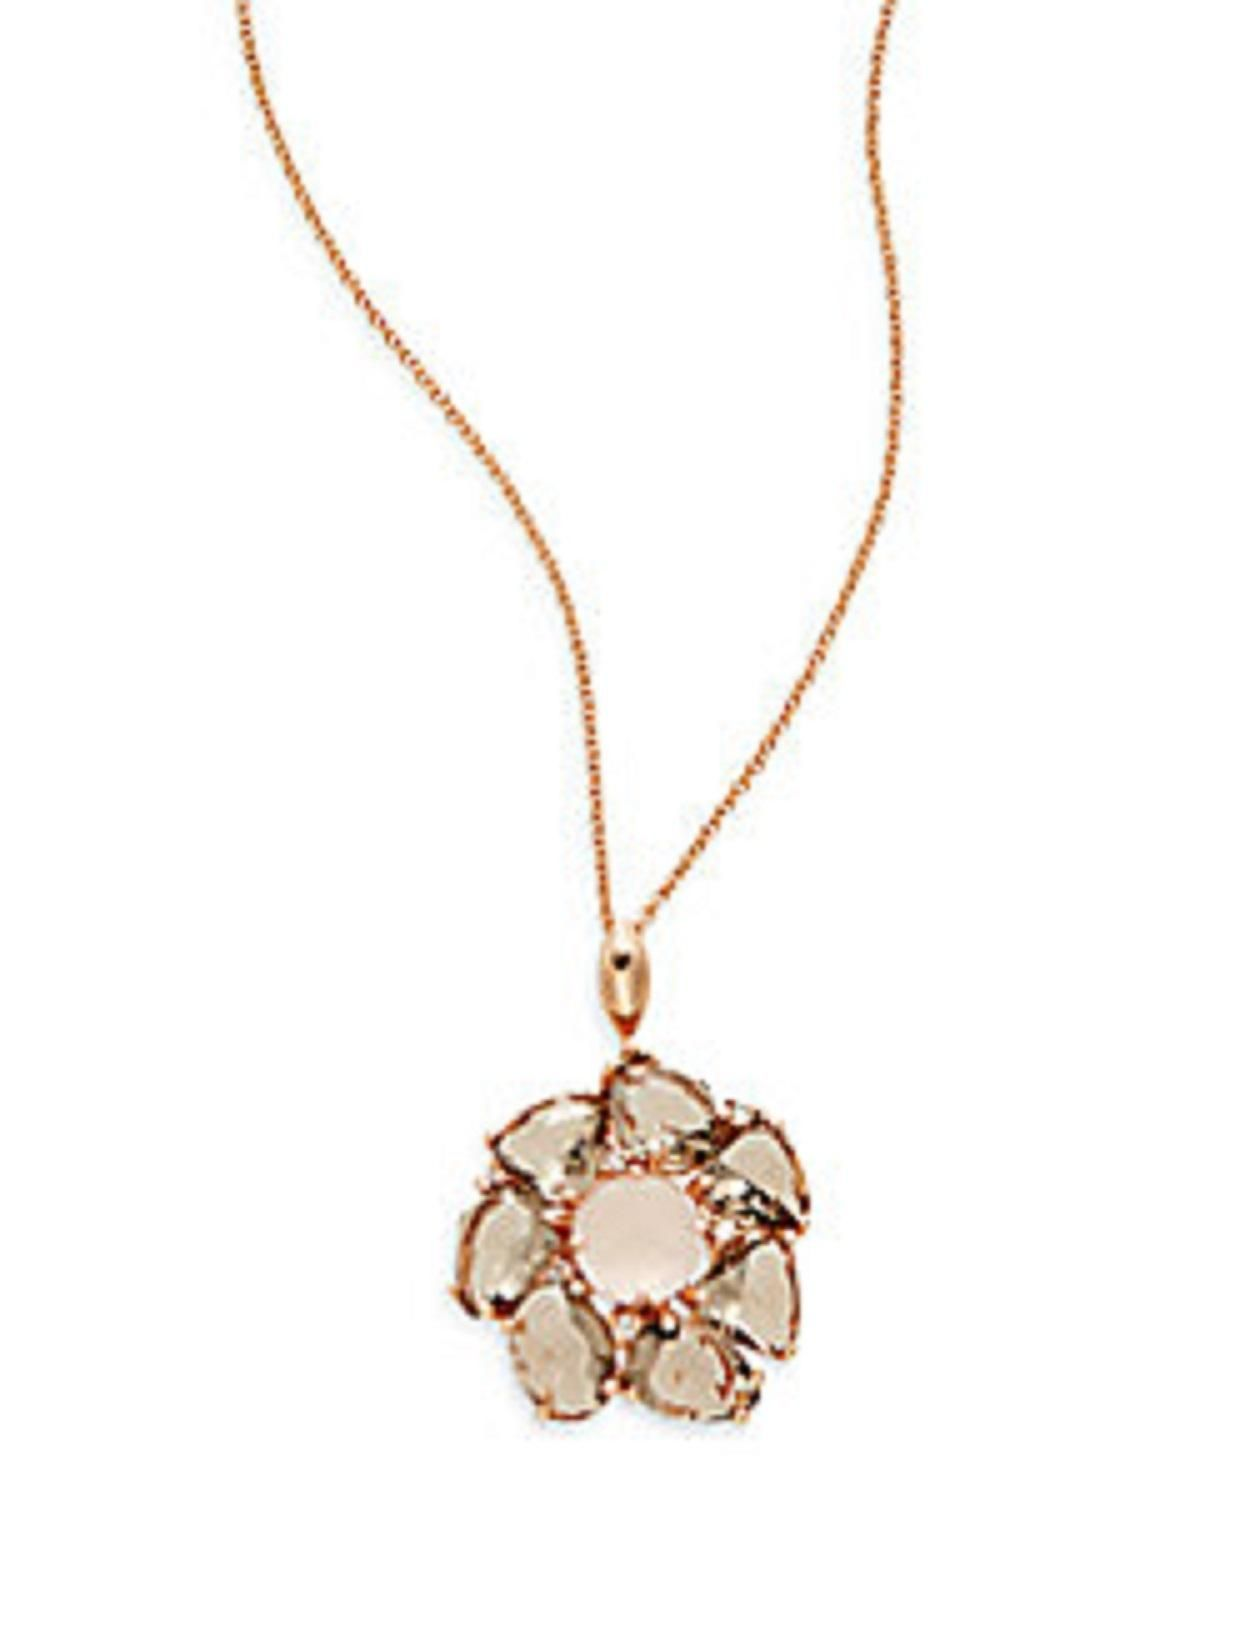 kendra necklaces in flowergirl scott lg gold necklace girl jewelry flower pendant categories